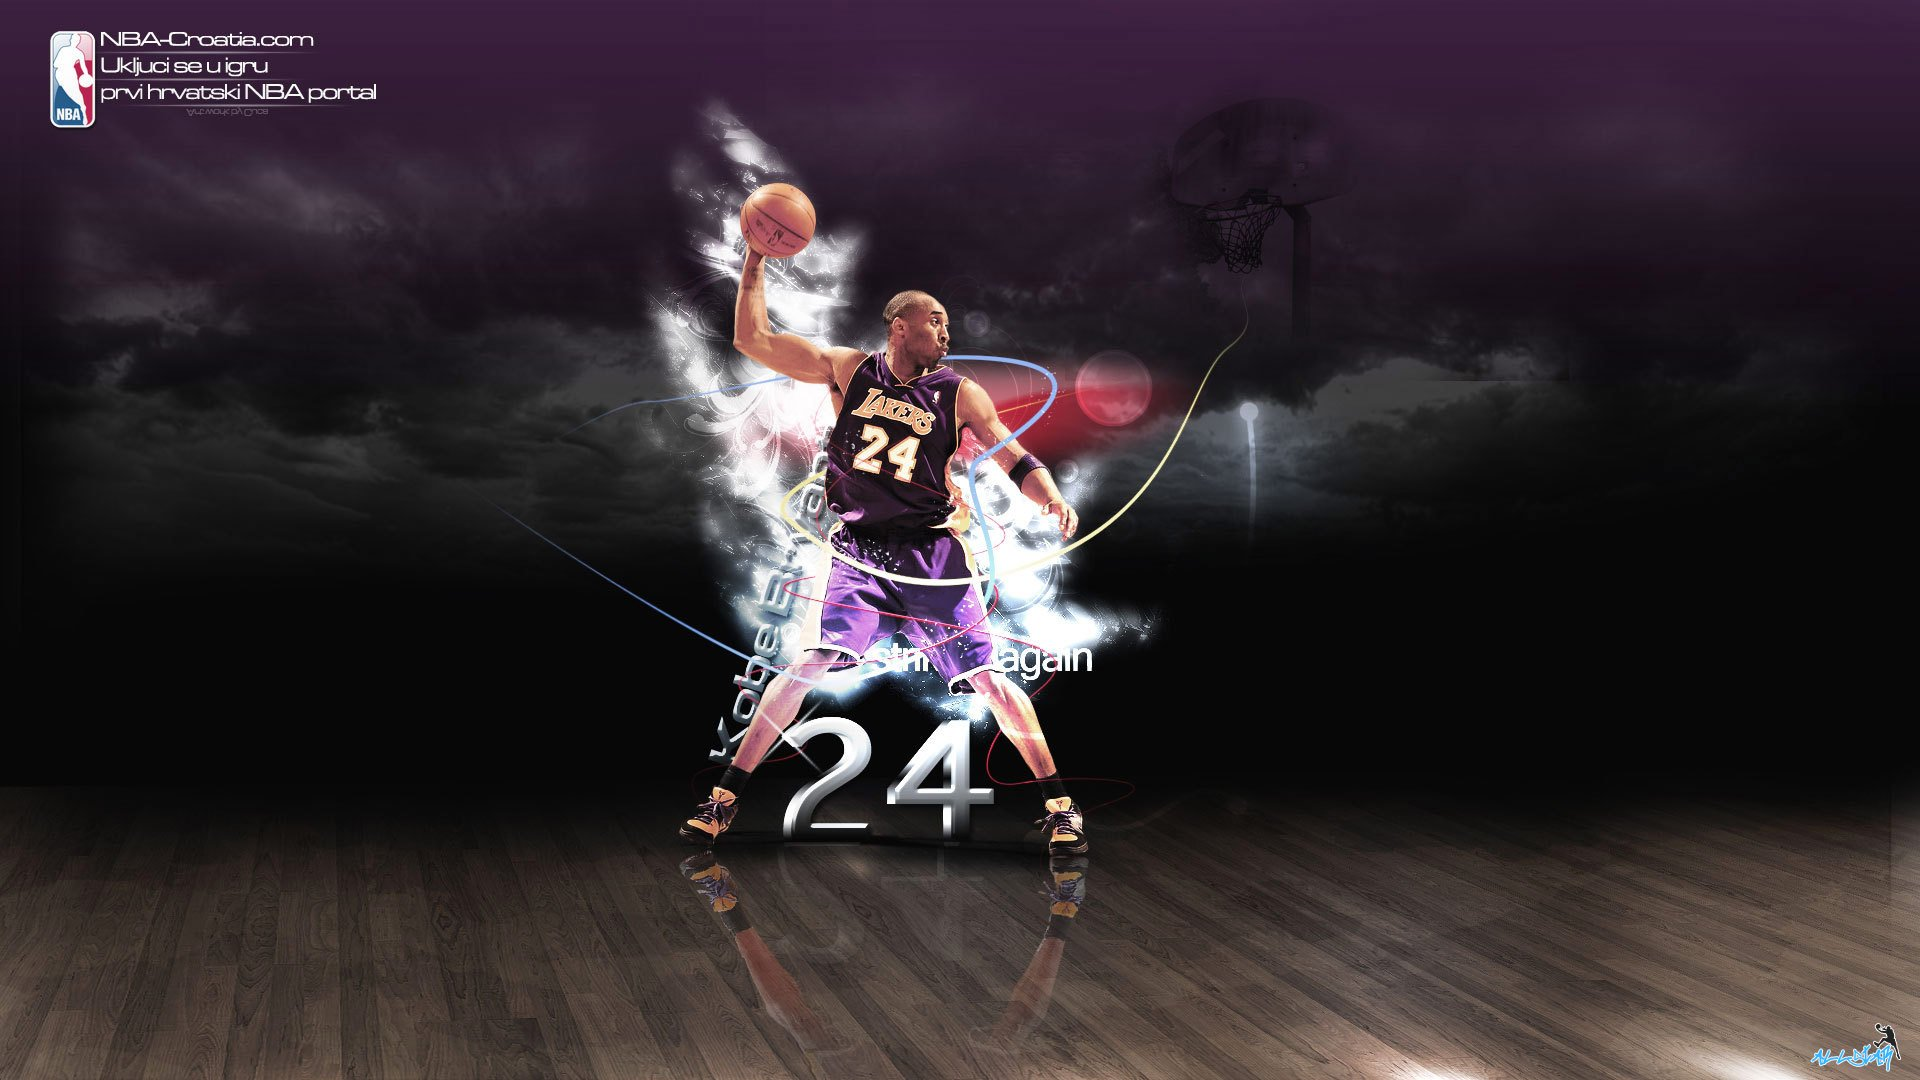 Sports Nba Wallpapers Backgrounds Xpx 1920x1080px